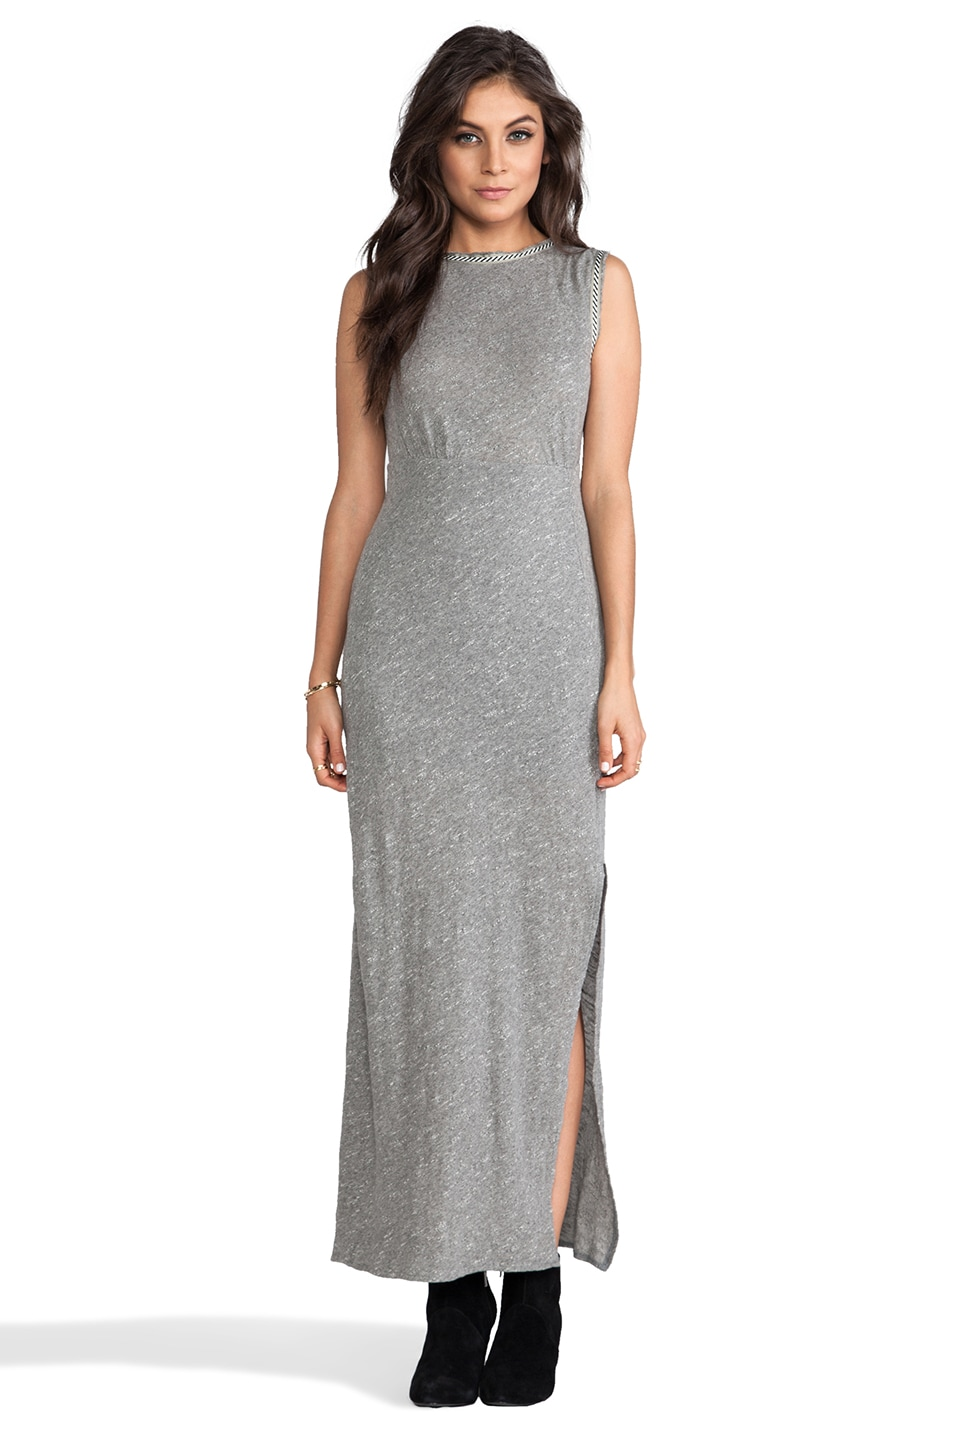 Free People Sabrina Maxi Dress in Grey Heather